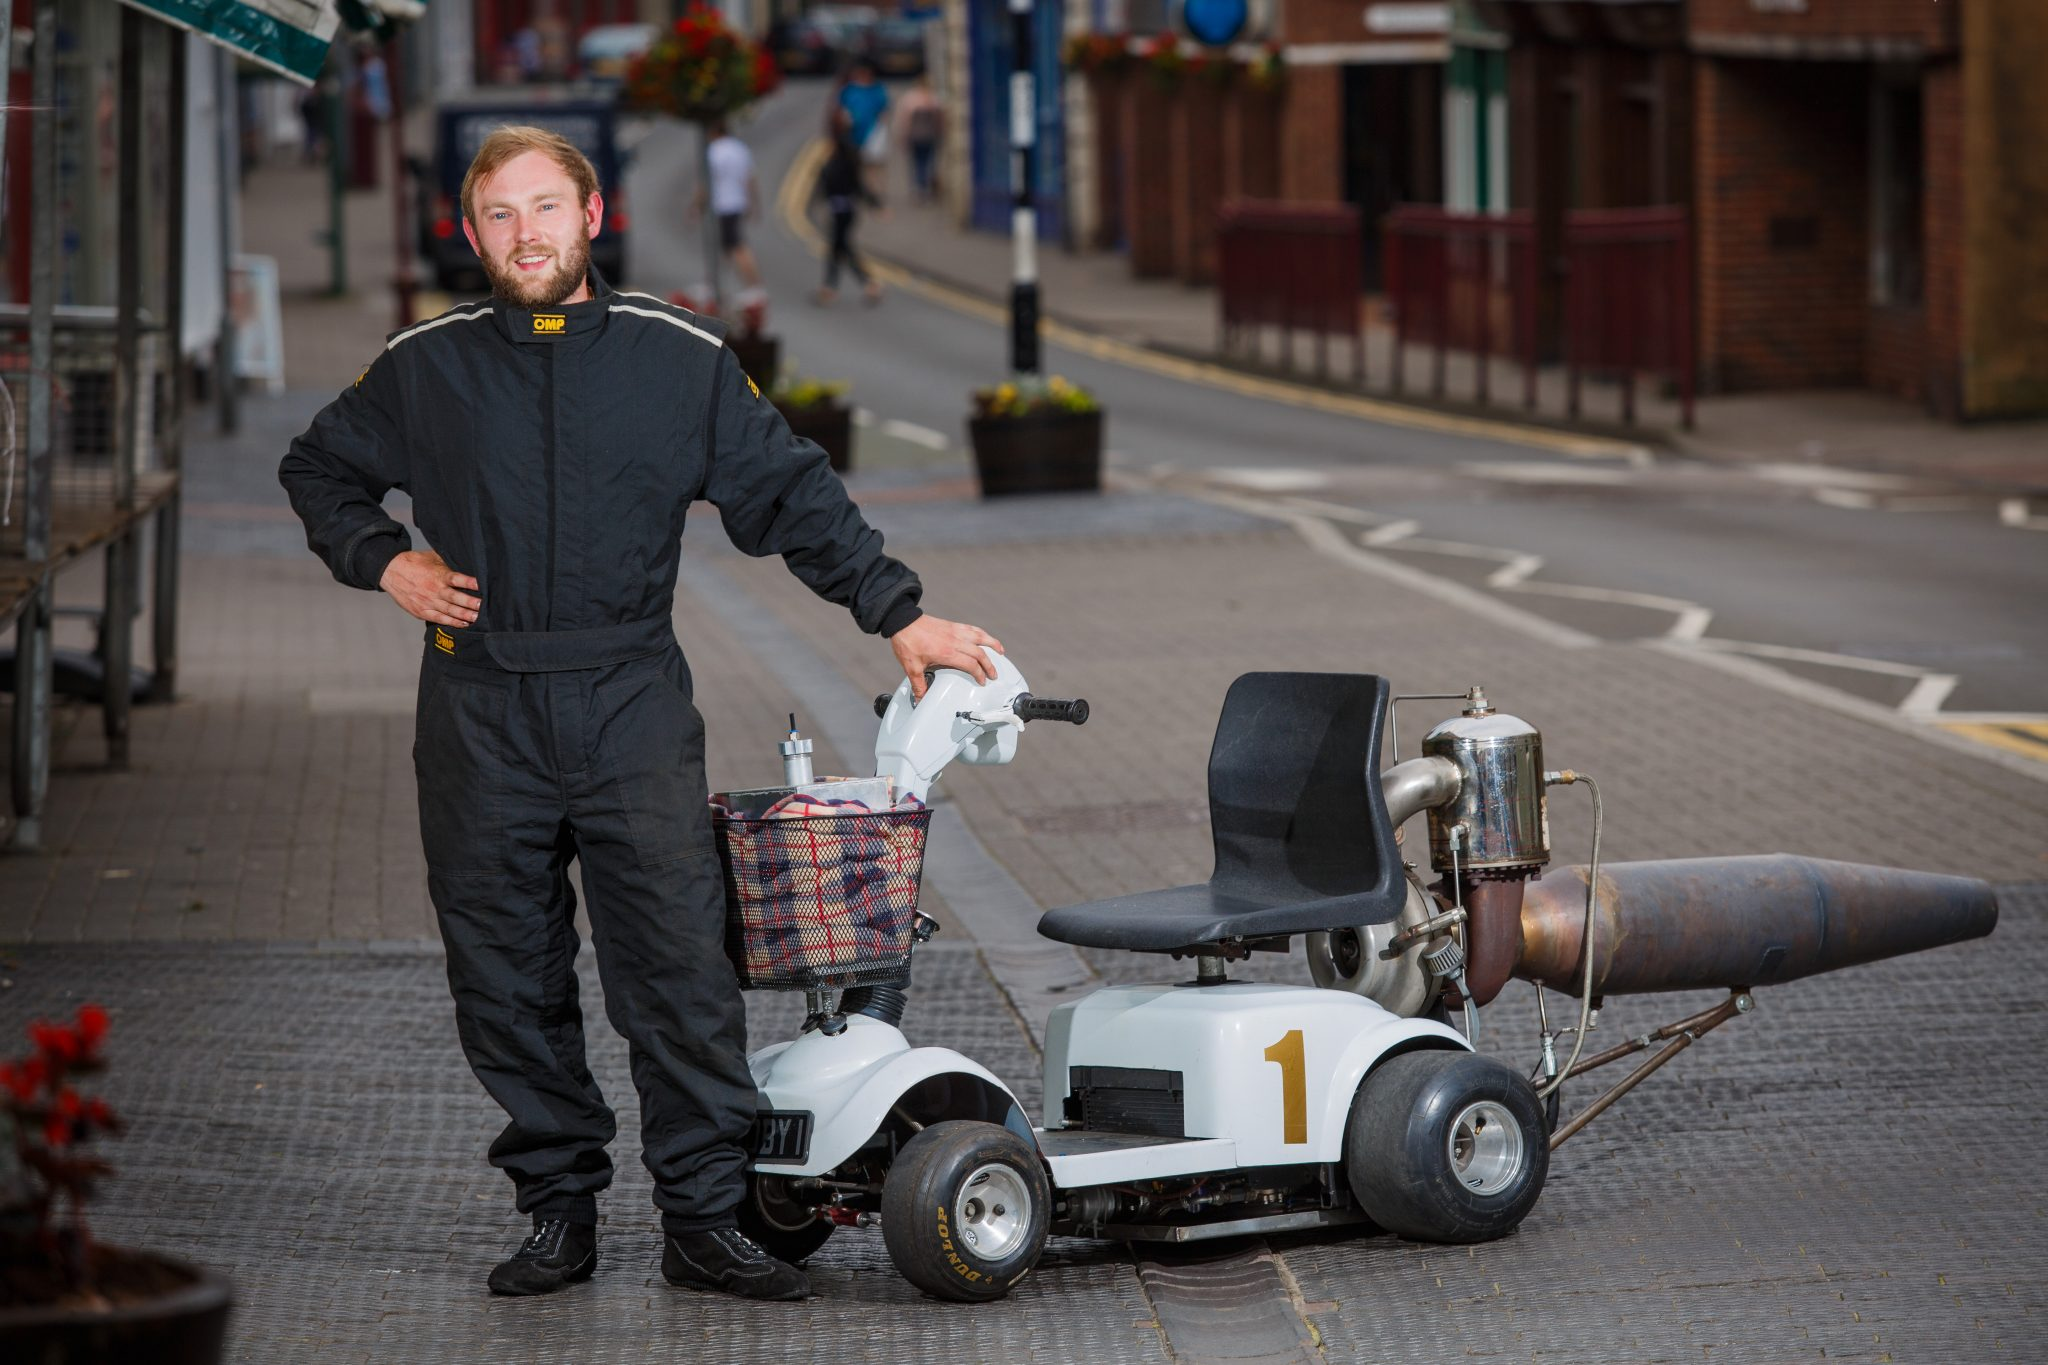 tom bagnall scooter credit swns